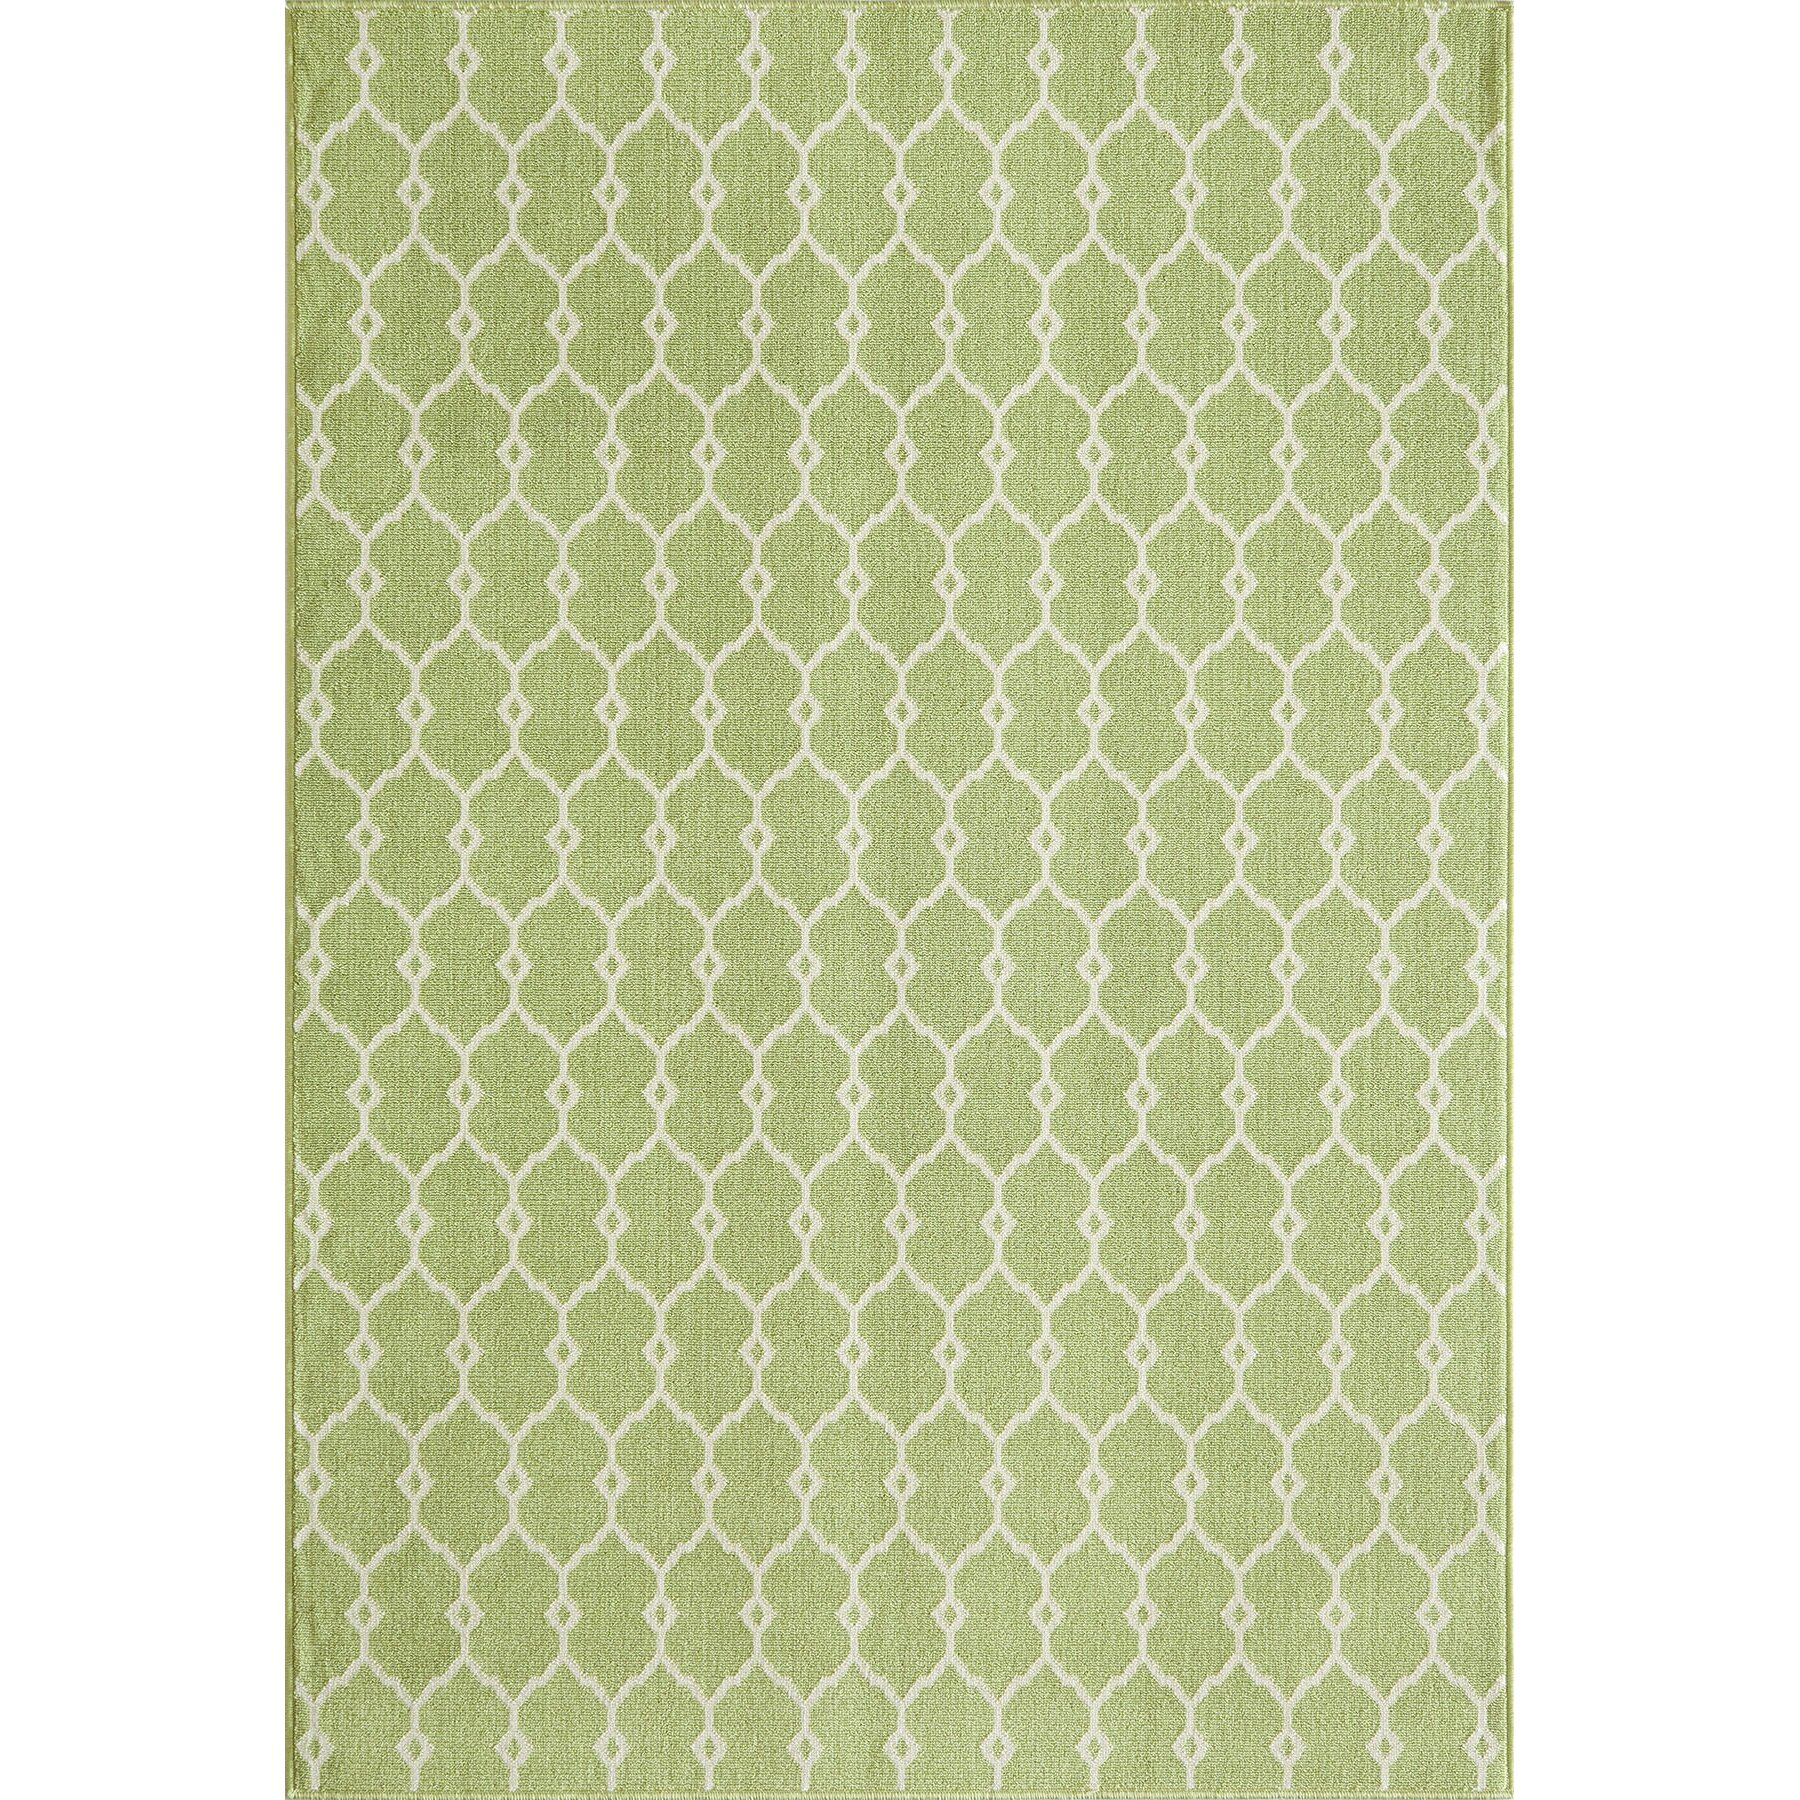 Momeni baja green indoor outdoor area rug reviews wayfair for Indoor outdoor carpet green